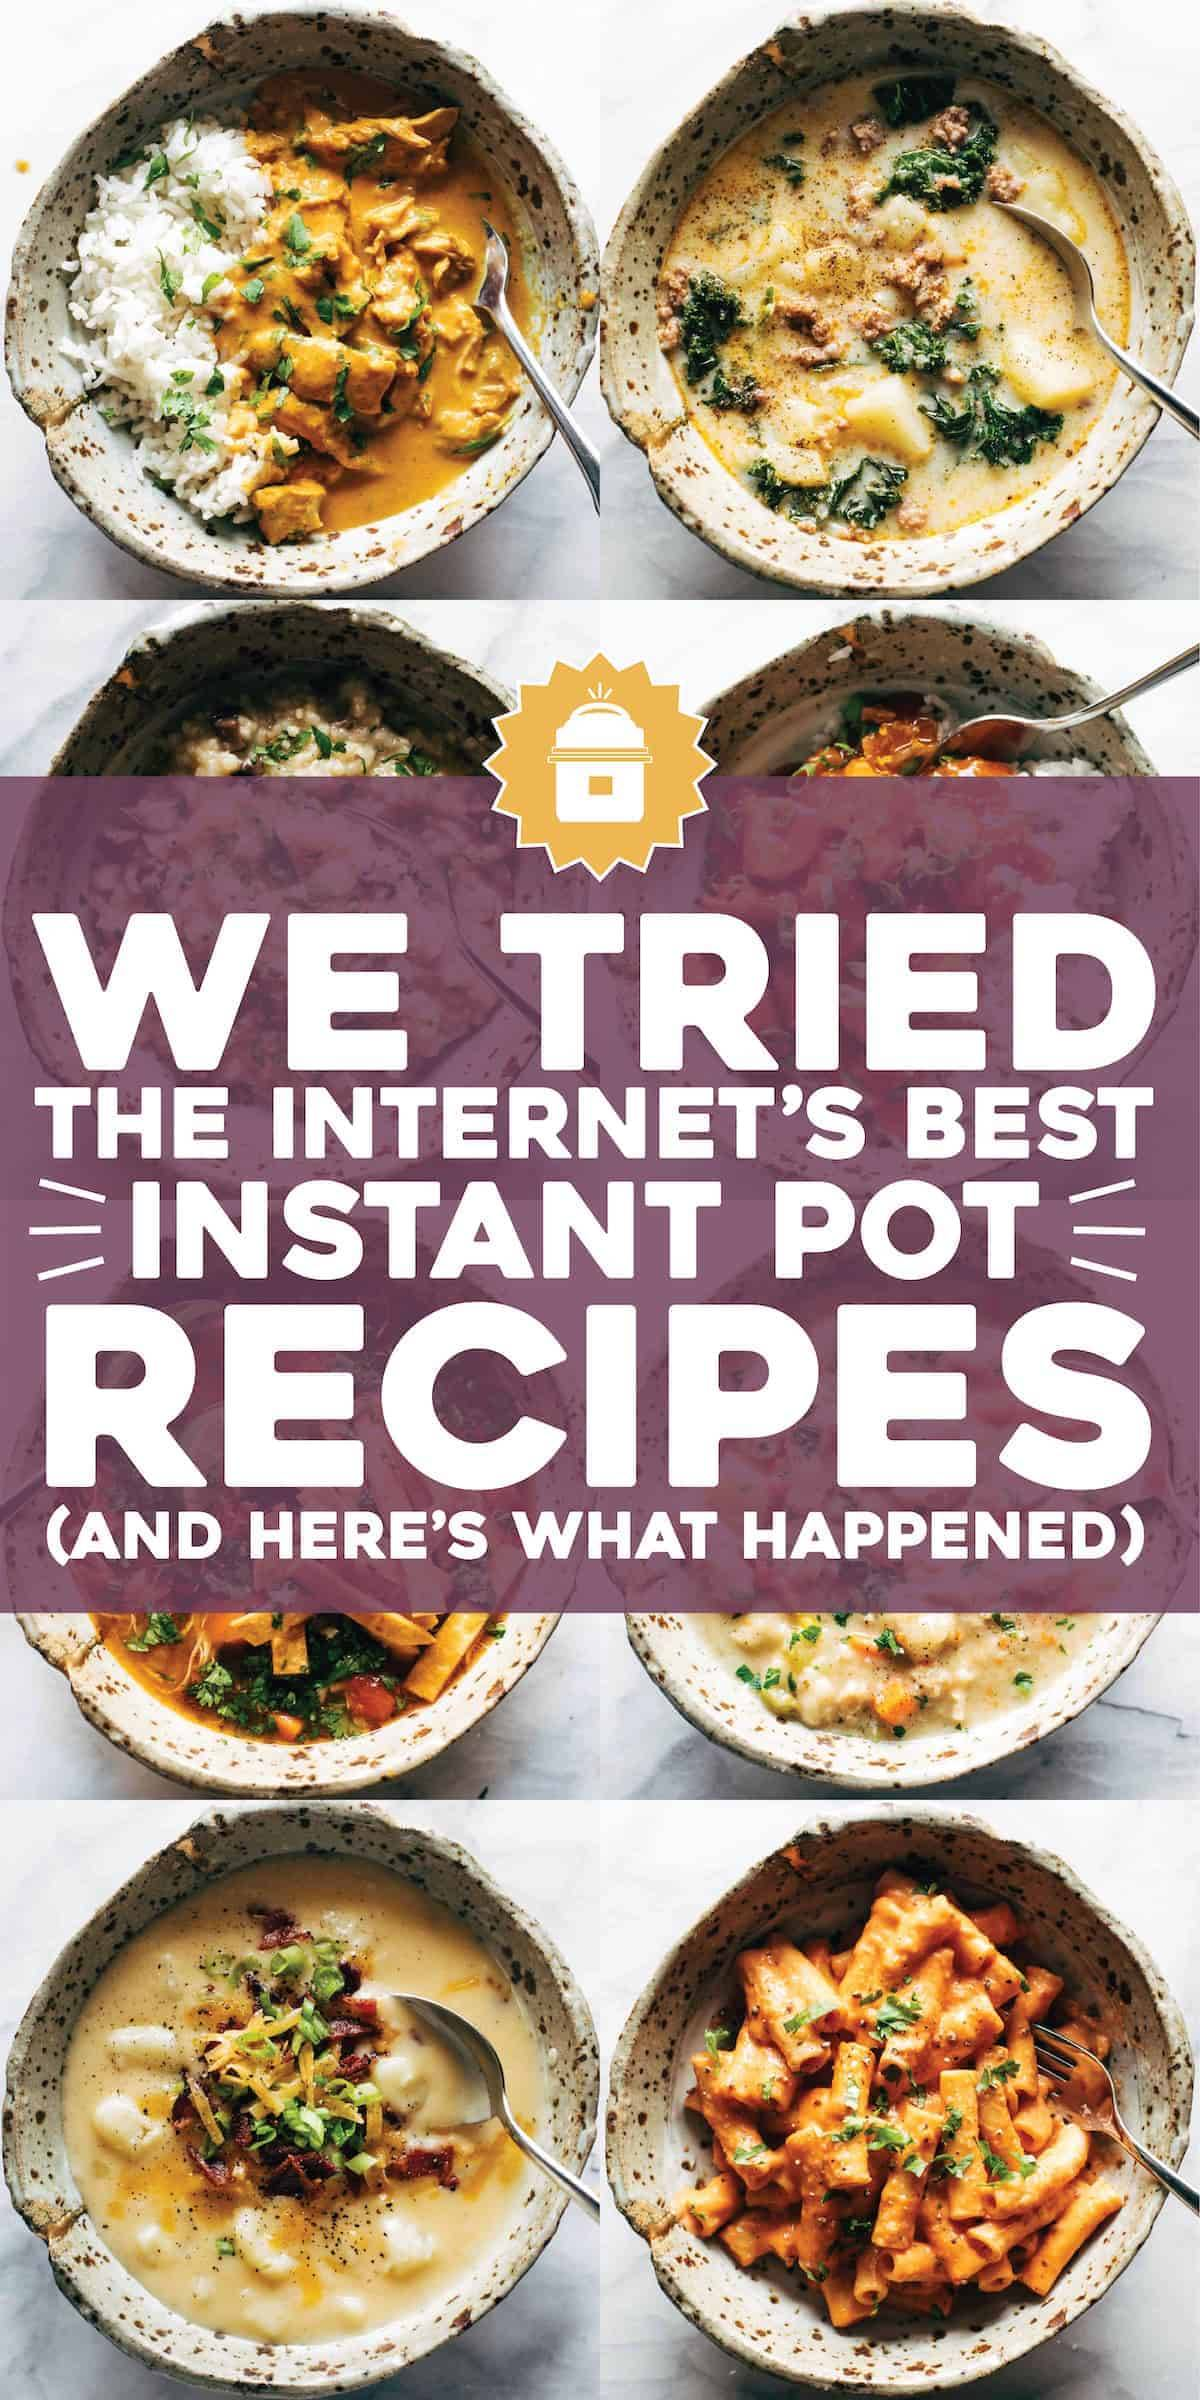 We Tried 10 Of The Internet S Best Instant Pot Recipes And These Are Our Favorites Pinch Of Yum